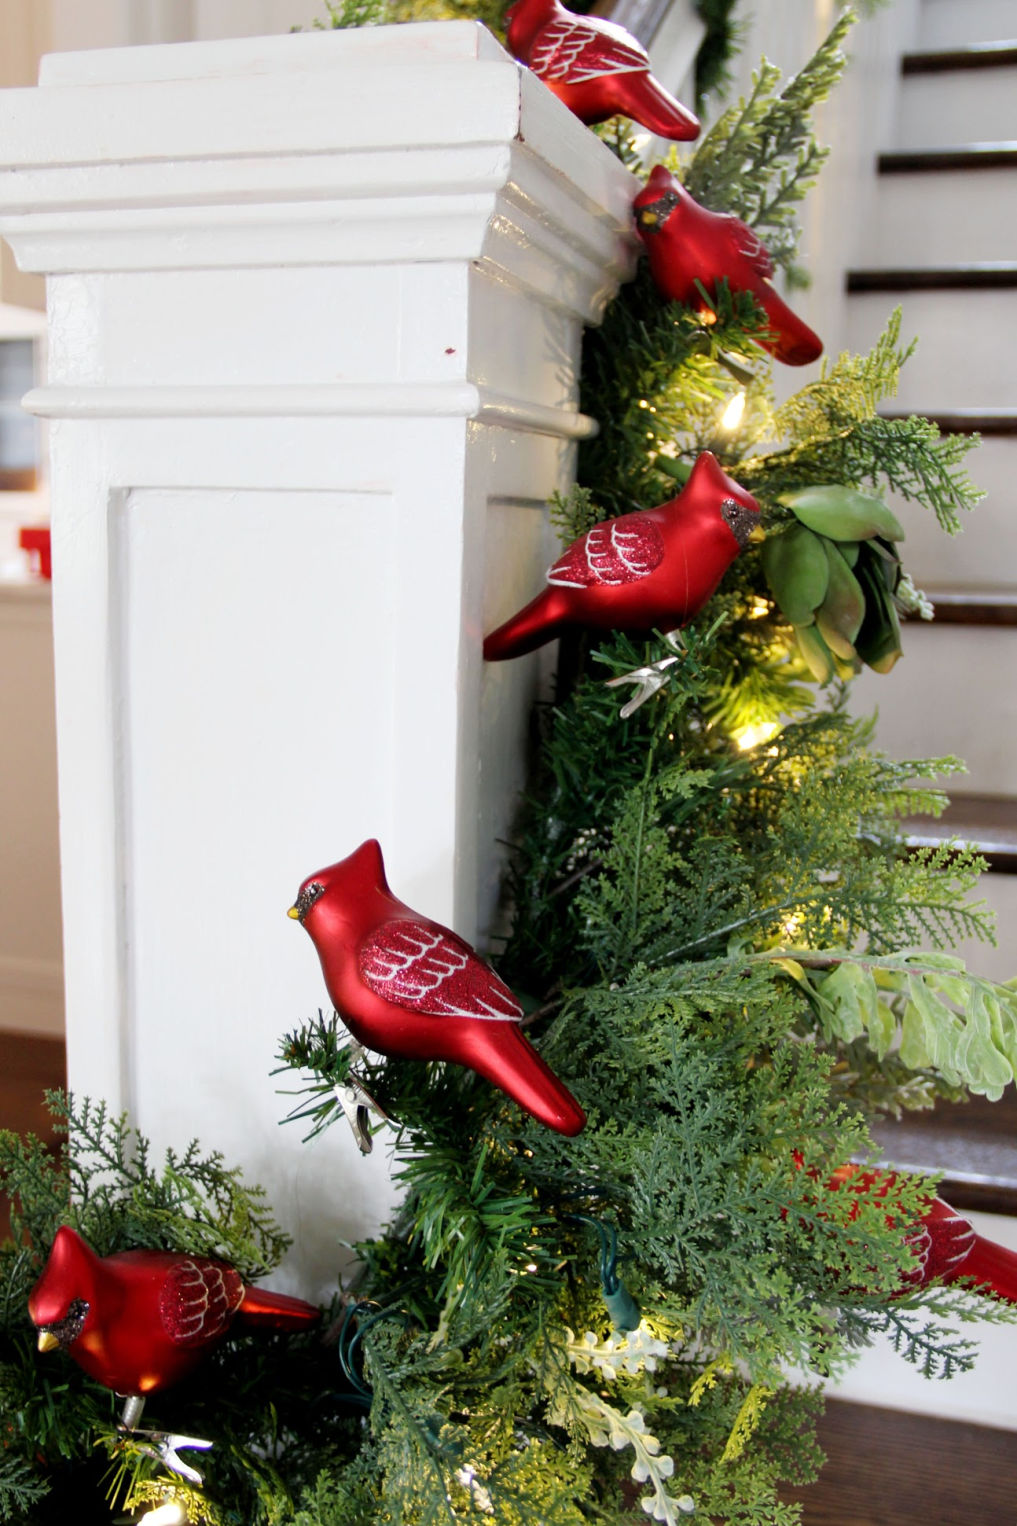 Christmas garland filled with red cardinal ornaments kellyelko.com #christmas #christmasdecor #christmasdecorating #christmashome #christmastour #diychristmas #christmasideas #christmasmantel #christmastree #christmasornaments #vintagechristmas #farmhousechristmas #colorfulchristmas #creativechristmas #kellyelko #cardinals #bannister #christmasgarland #christmasstairs